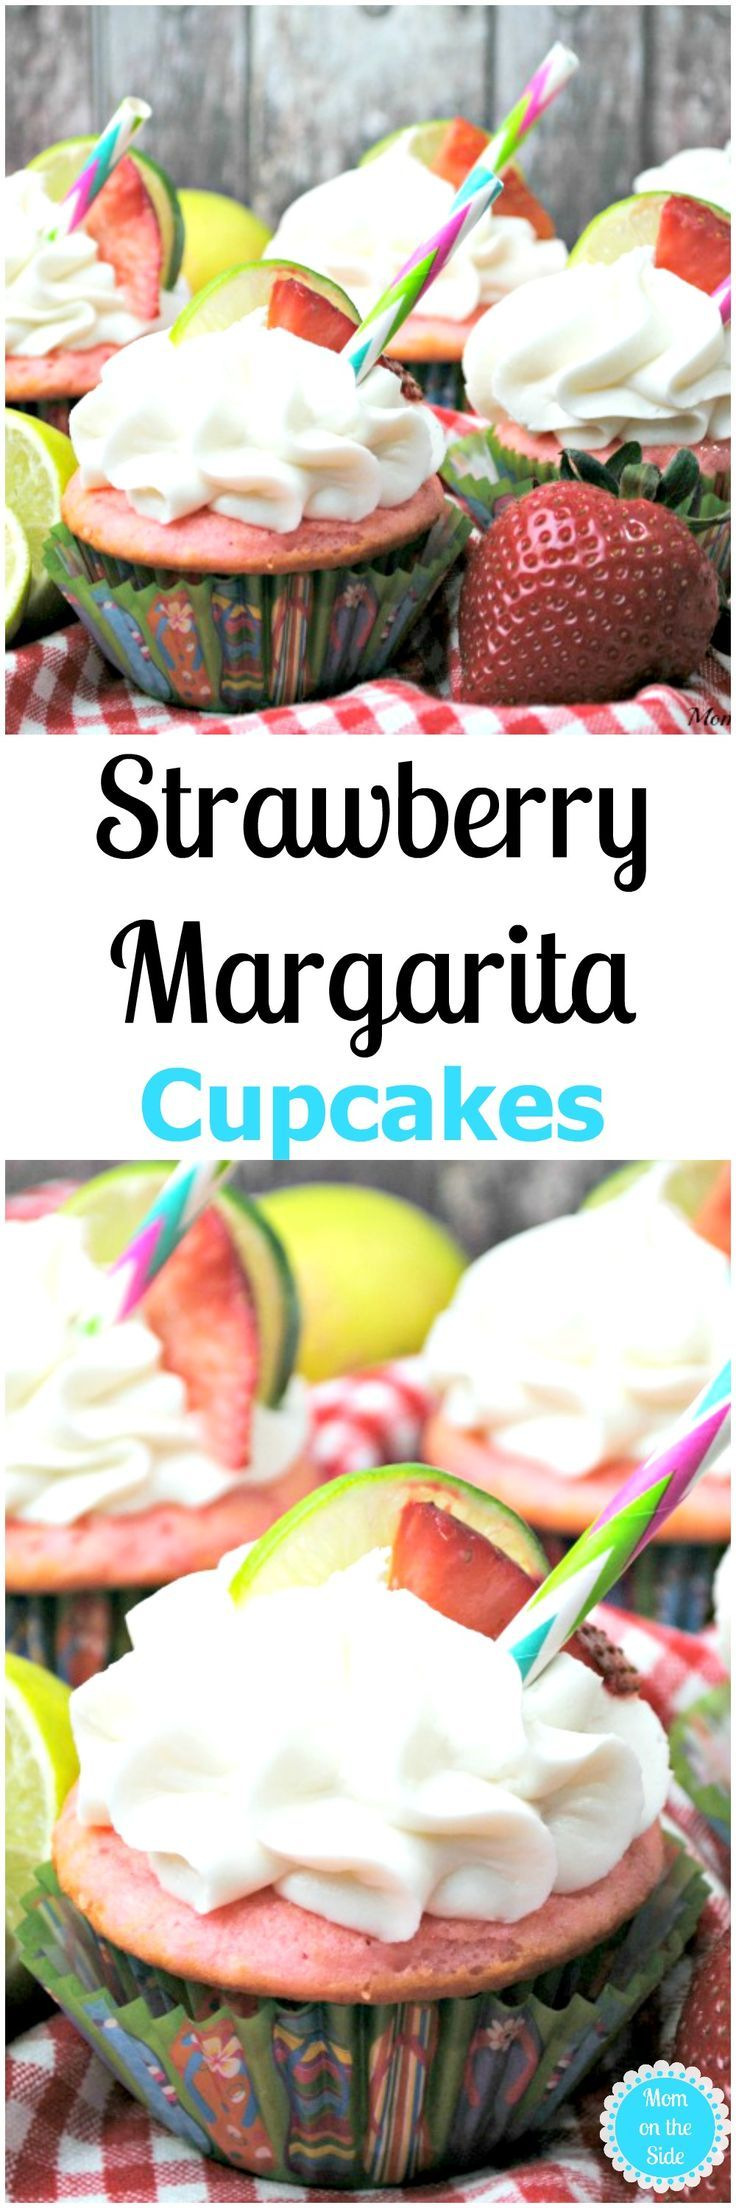 If you're over 21 and looking for a dessert infused with alcohol, give these Strawberry Margarita Cupcakes a whirl! Check out the recipe on Mom on the Side! via @momontheside